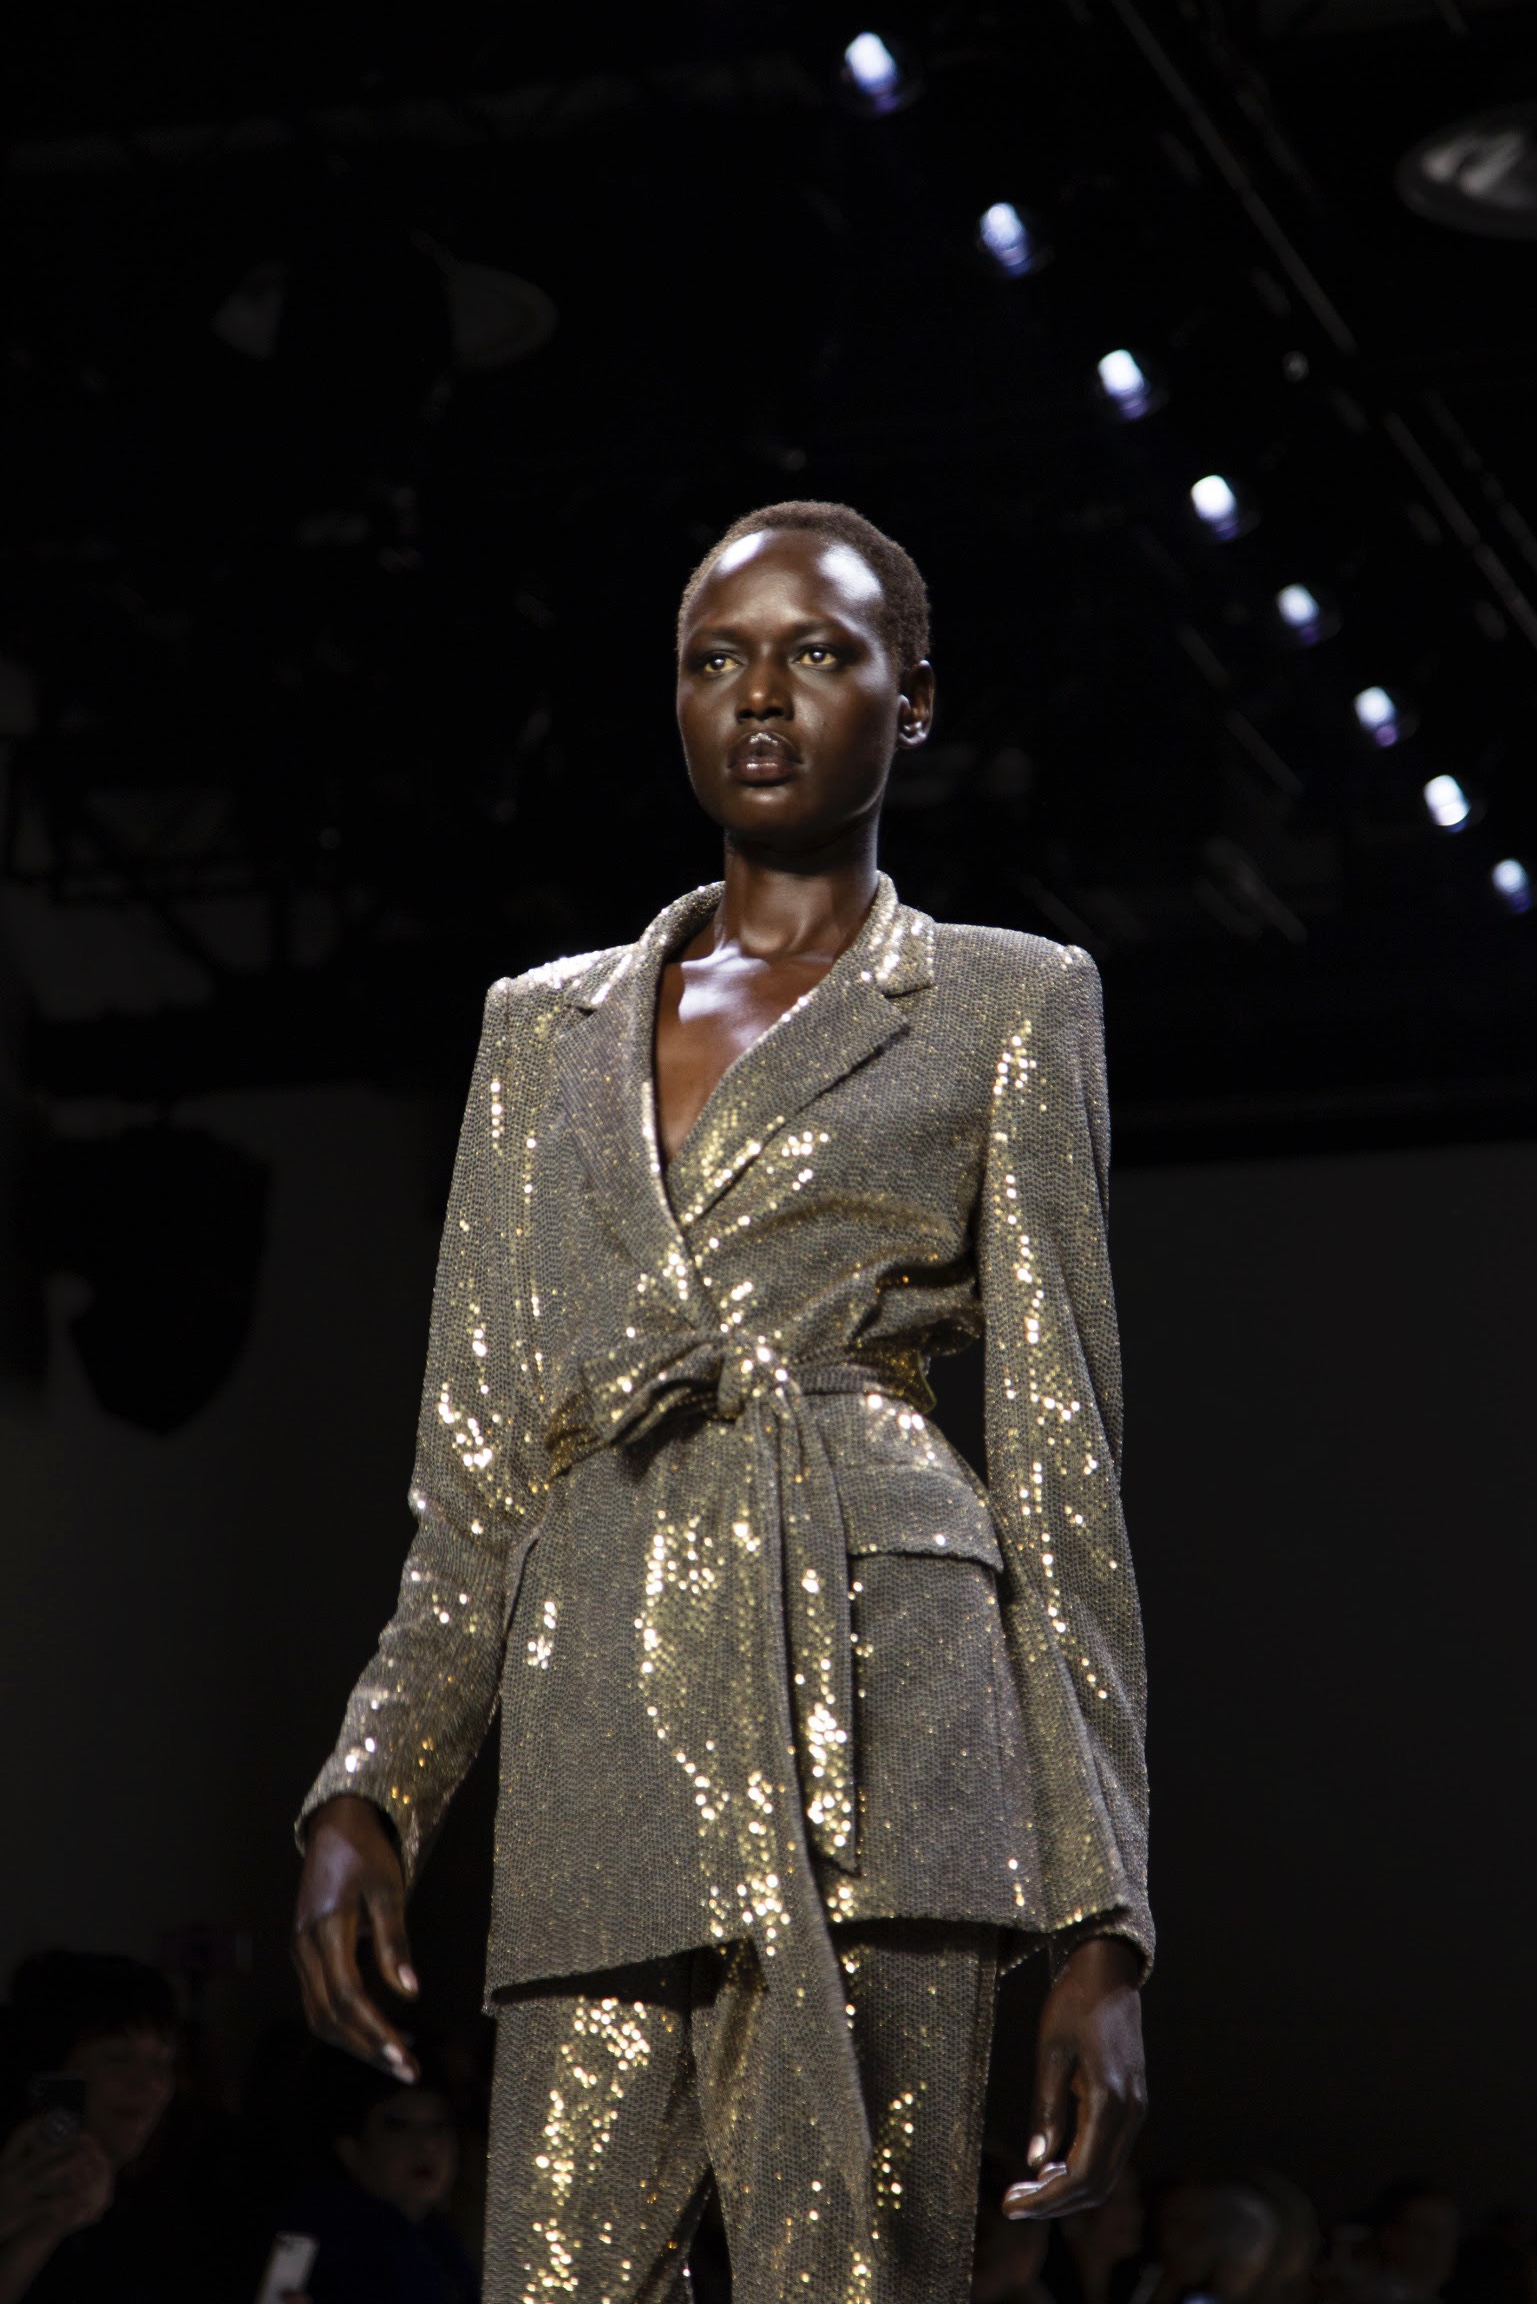 FW 19 Collections in New York were wild in the truest sense. - A sense of freedom and expression graced the runways and presentation floors. Here are a few highlights and trends from Eryka Clayton captured by Kristen Walker.